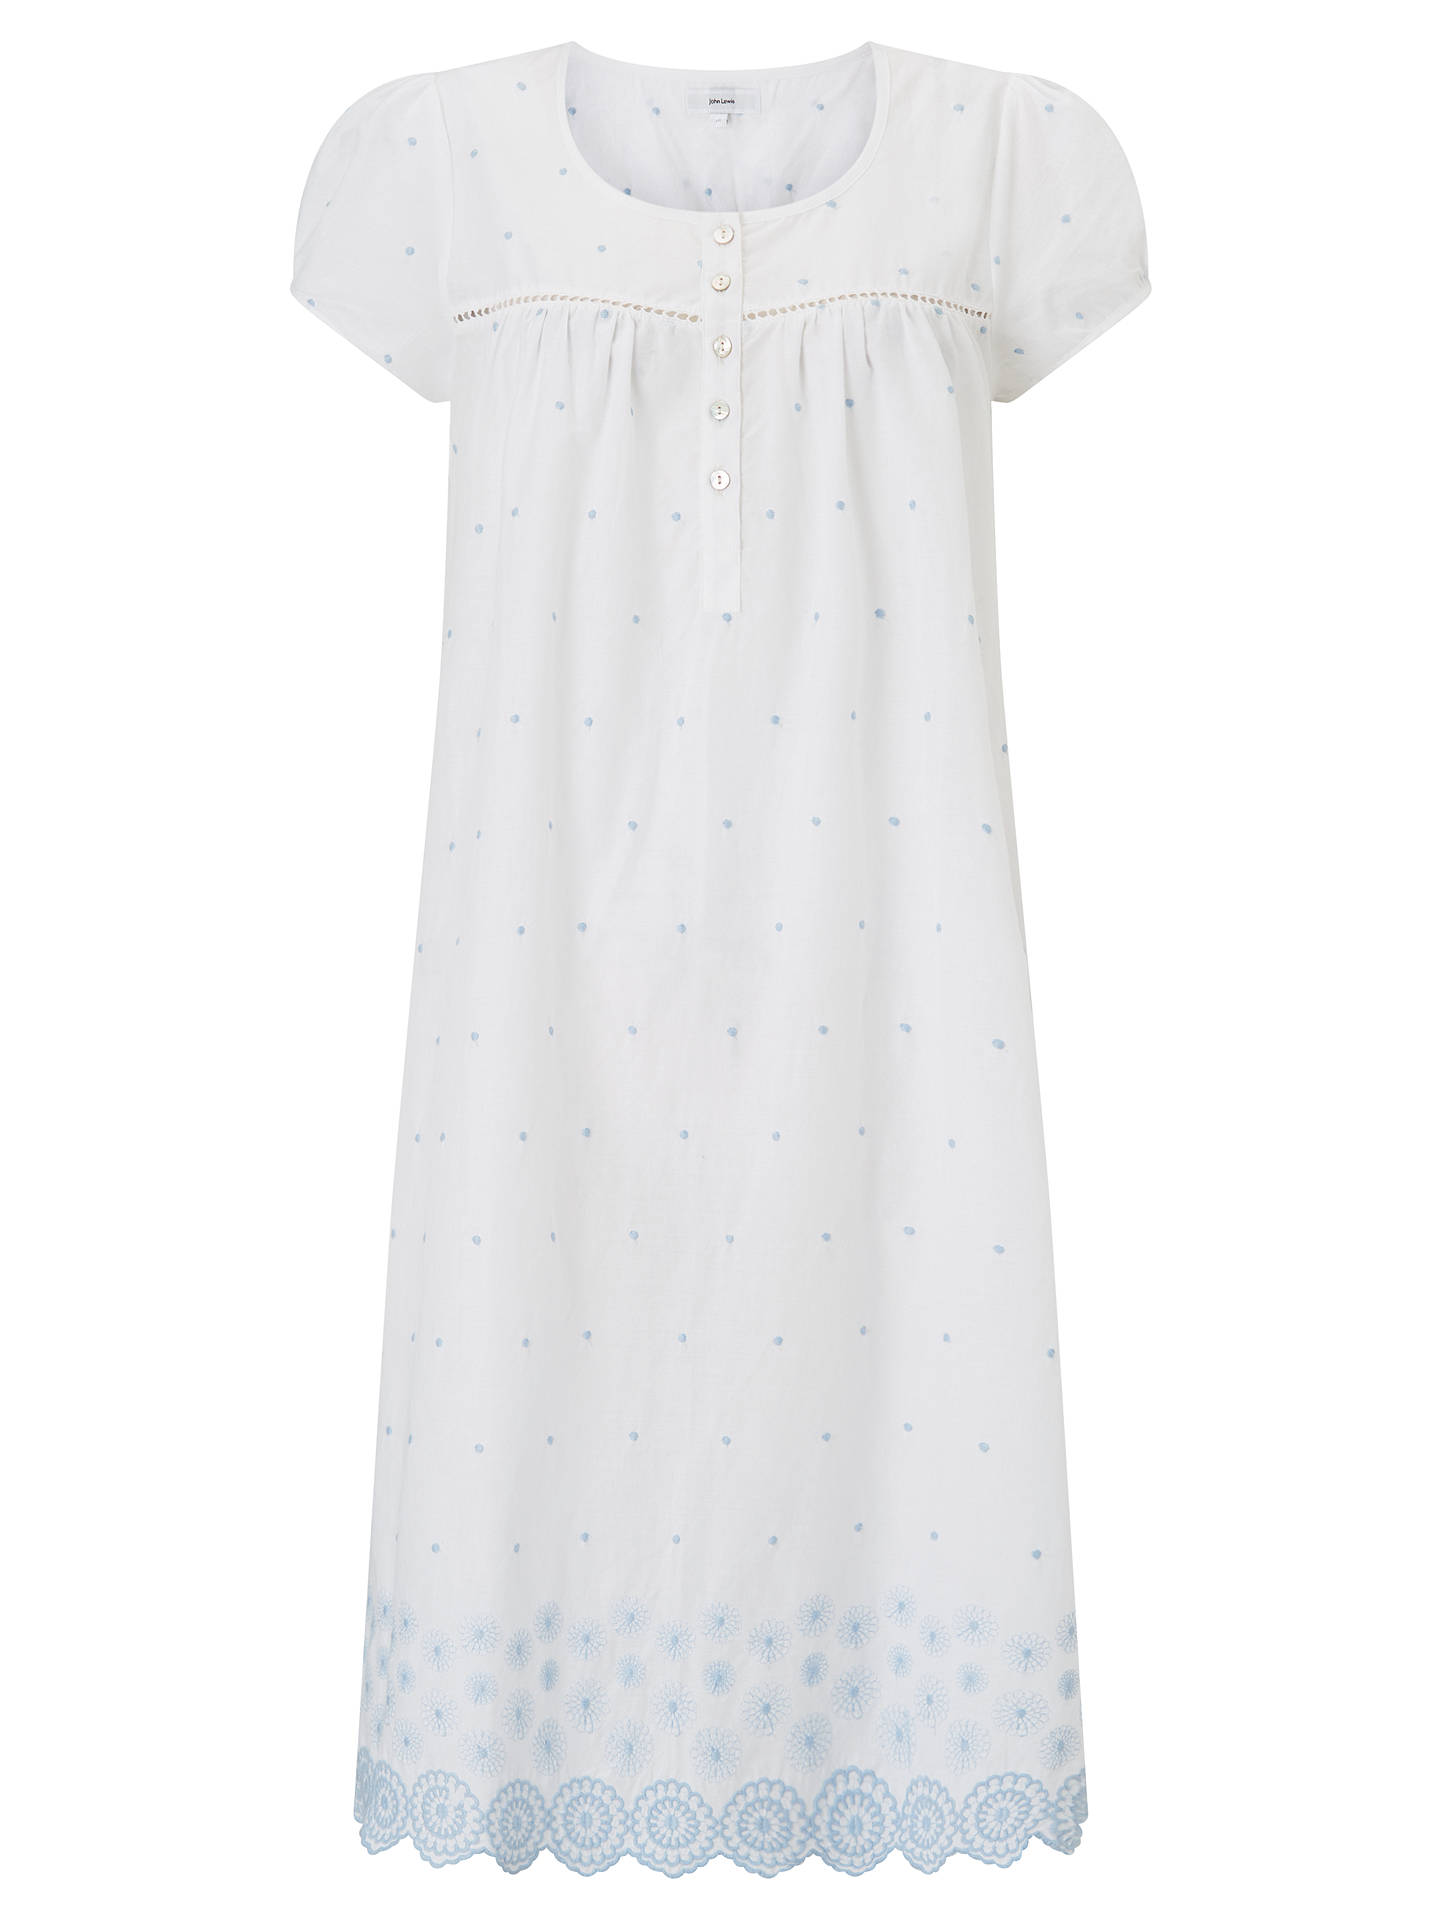 BuyJohn Lewis & Partners Circle Flower Embroidered Nightdress, White/Blue, 8 Online at johnlewis.com